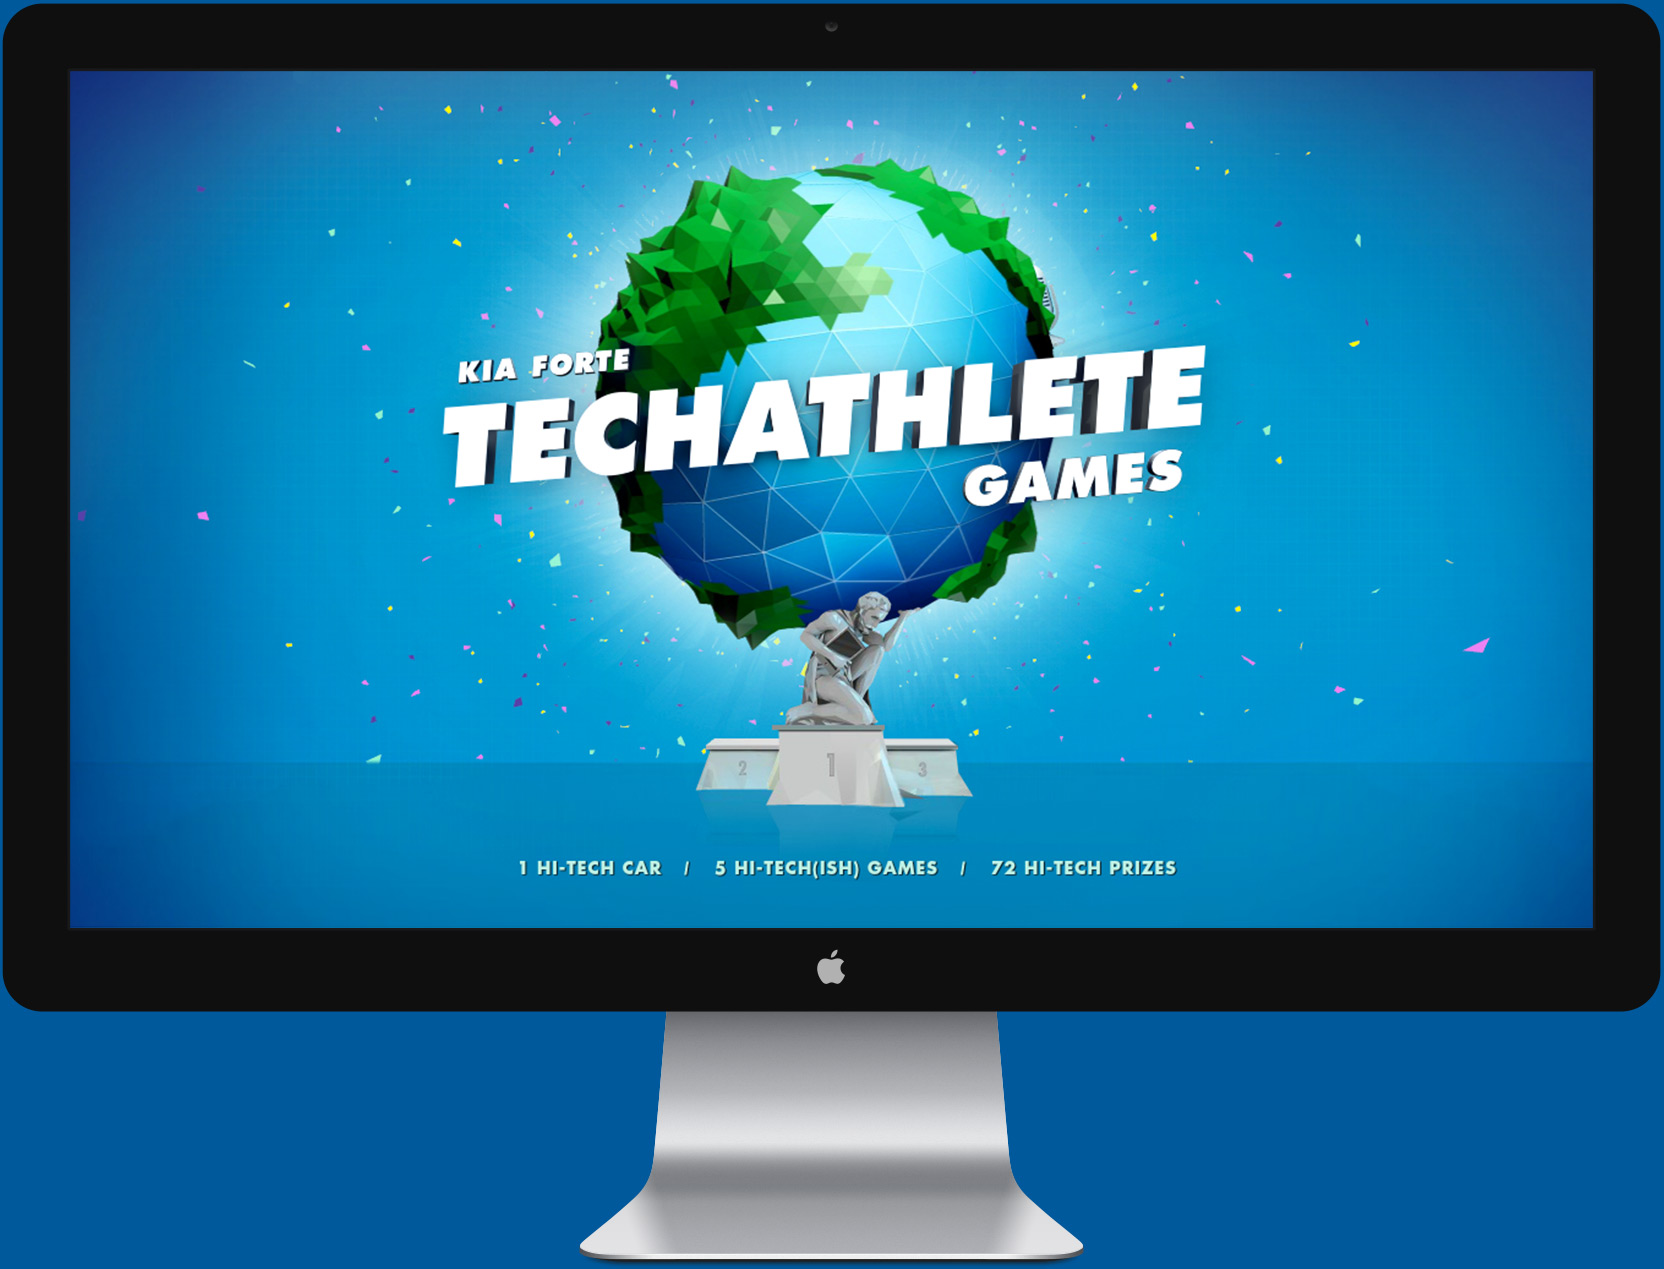 MB_kia-techathlete-games_0